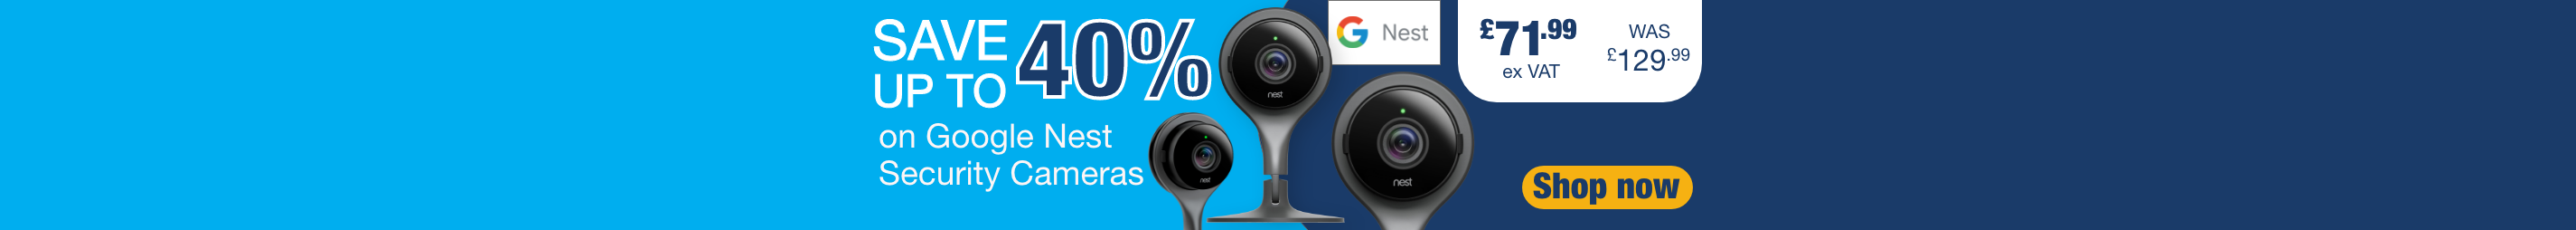 Save up to 40% on Google Nest